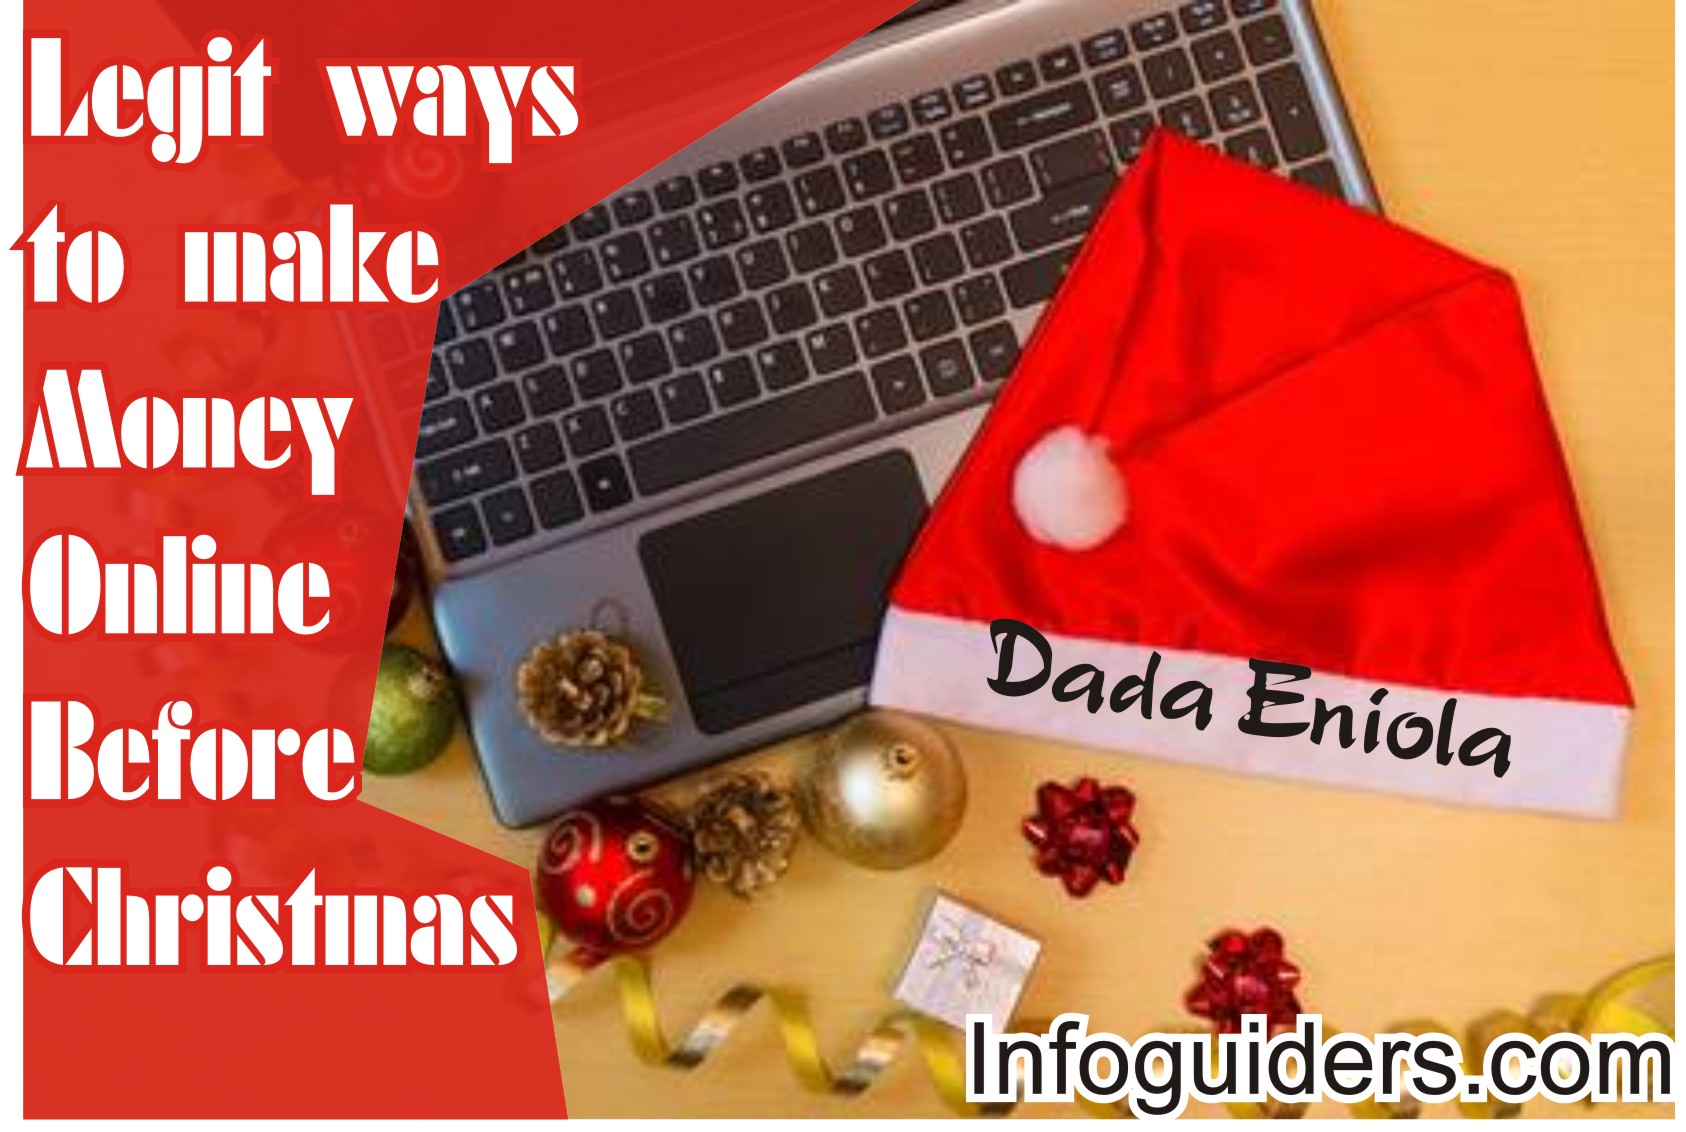 Make money online before christmas